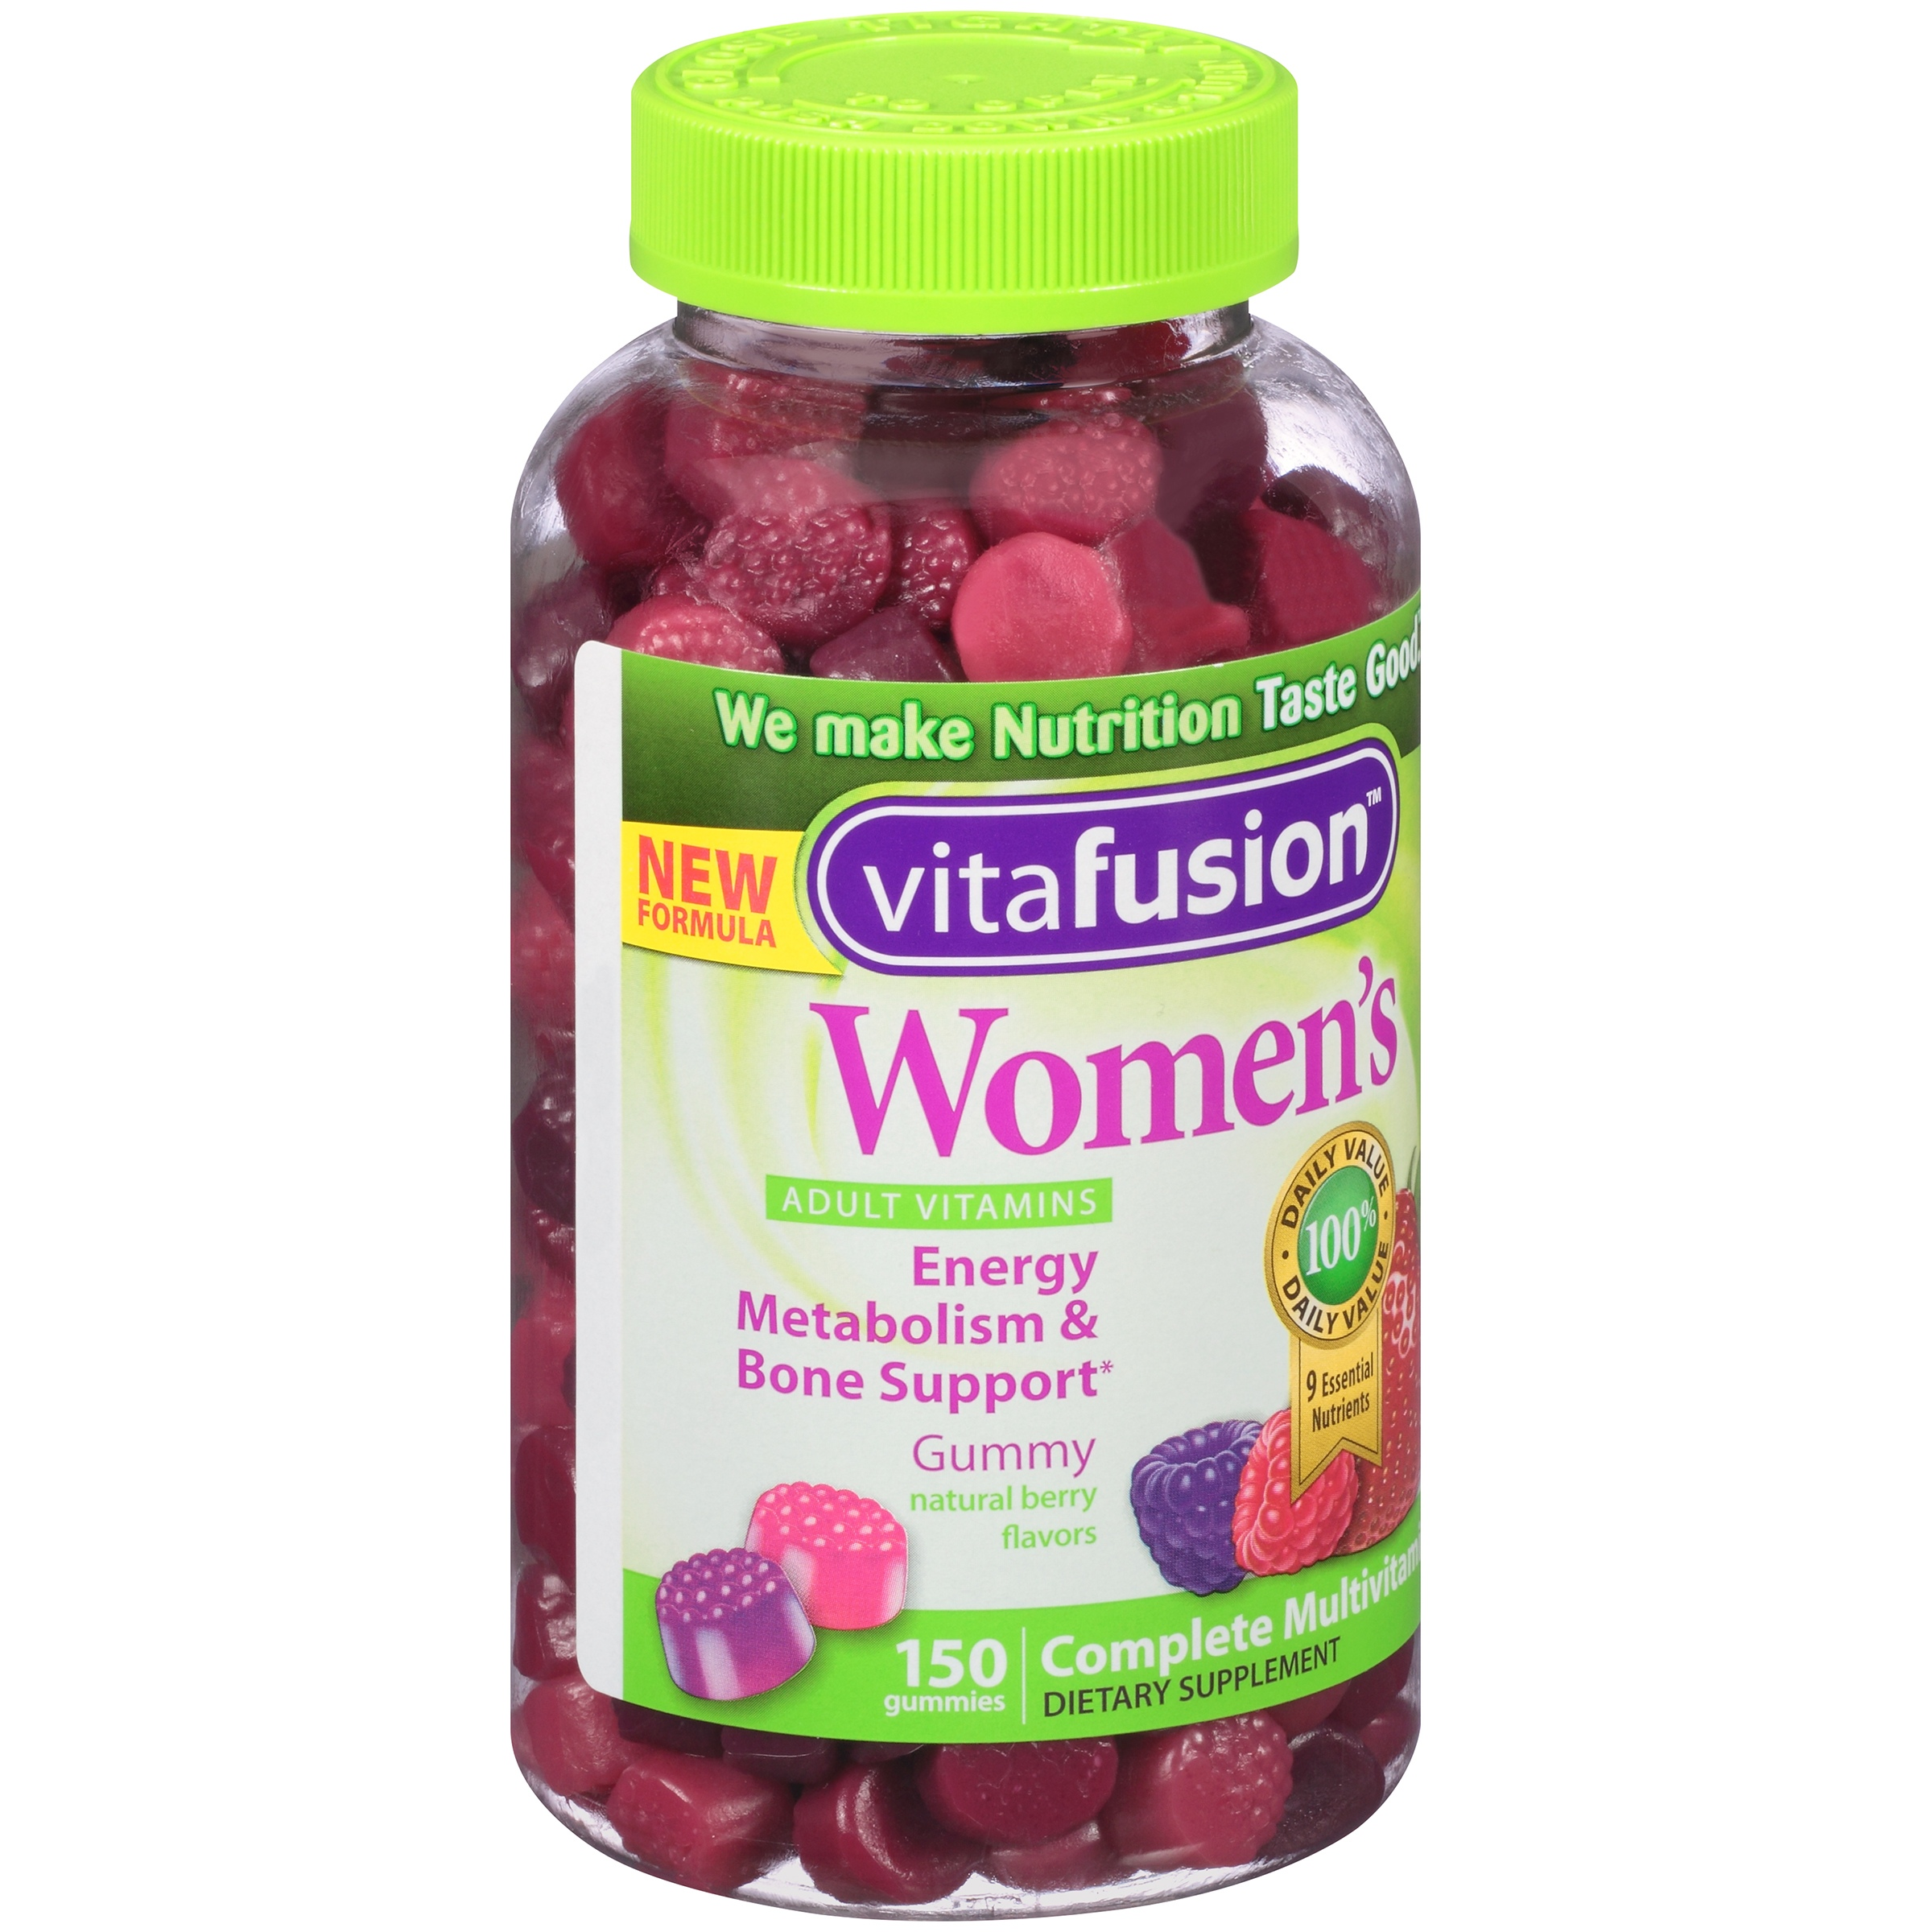 Vitafusion™ Women's Natural Berry Flavors Complete Multivitamin Gummies Dietary Supplement 150 ct Bottle